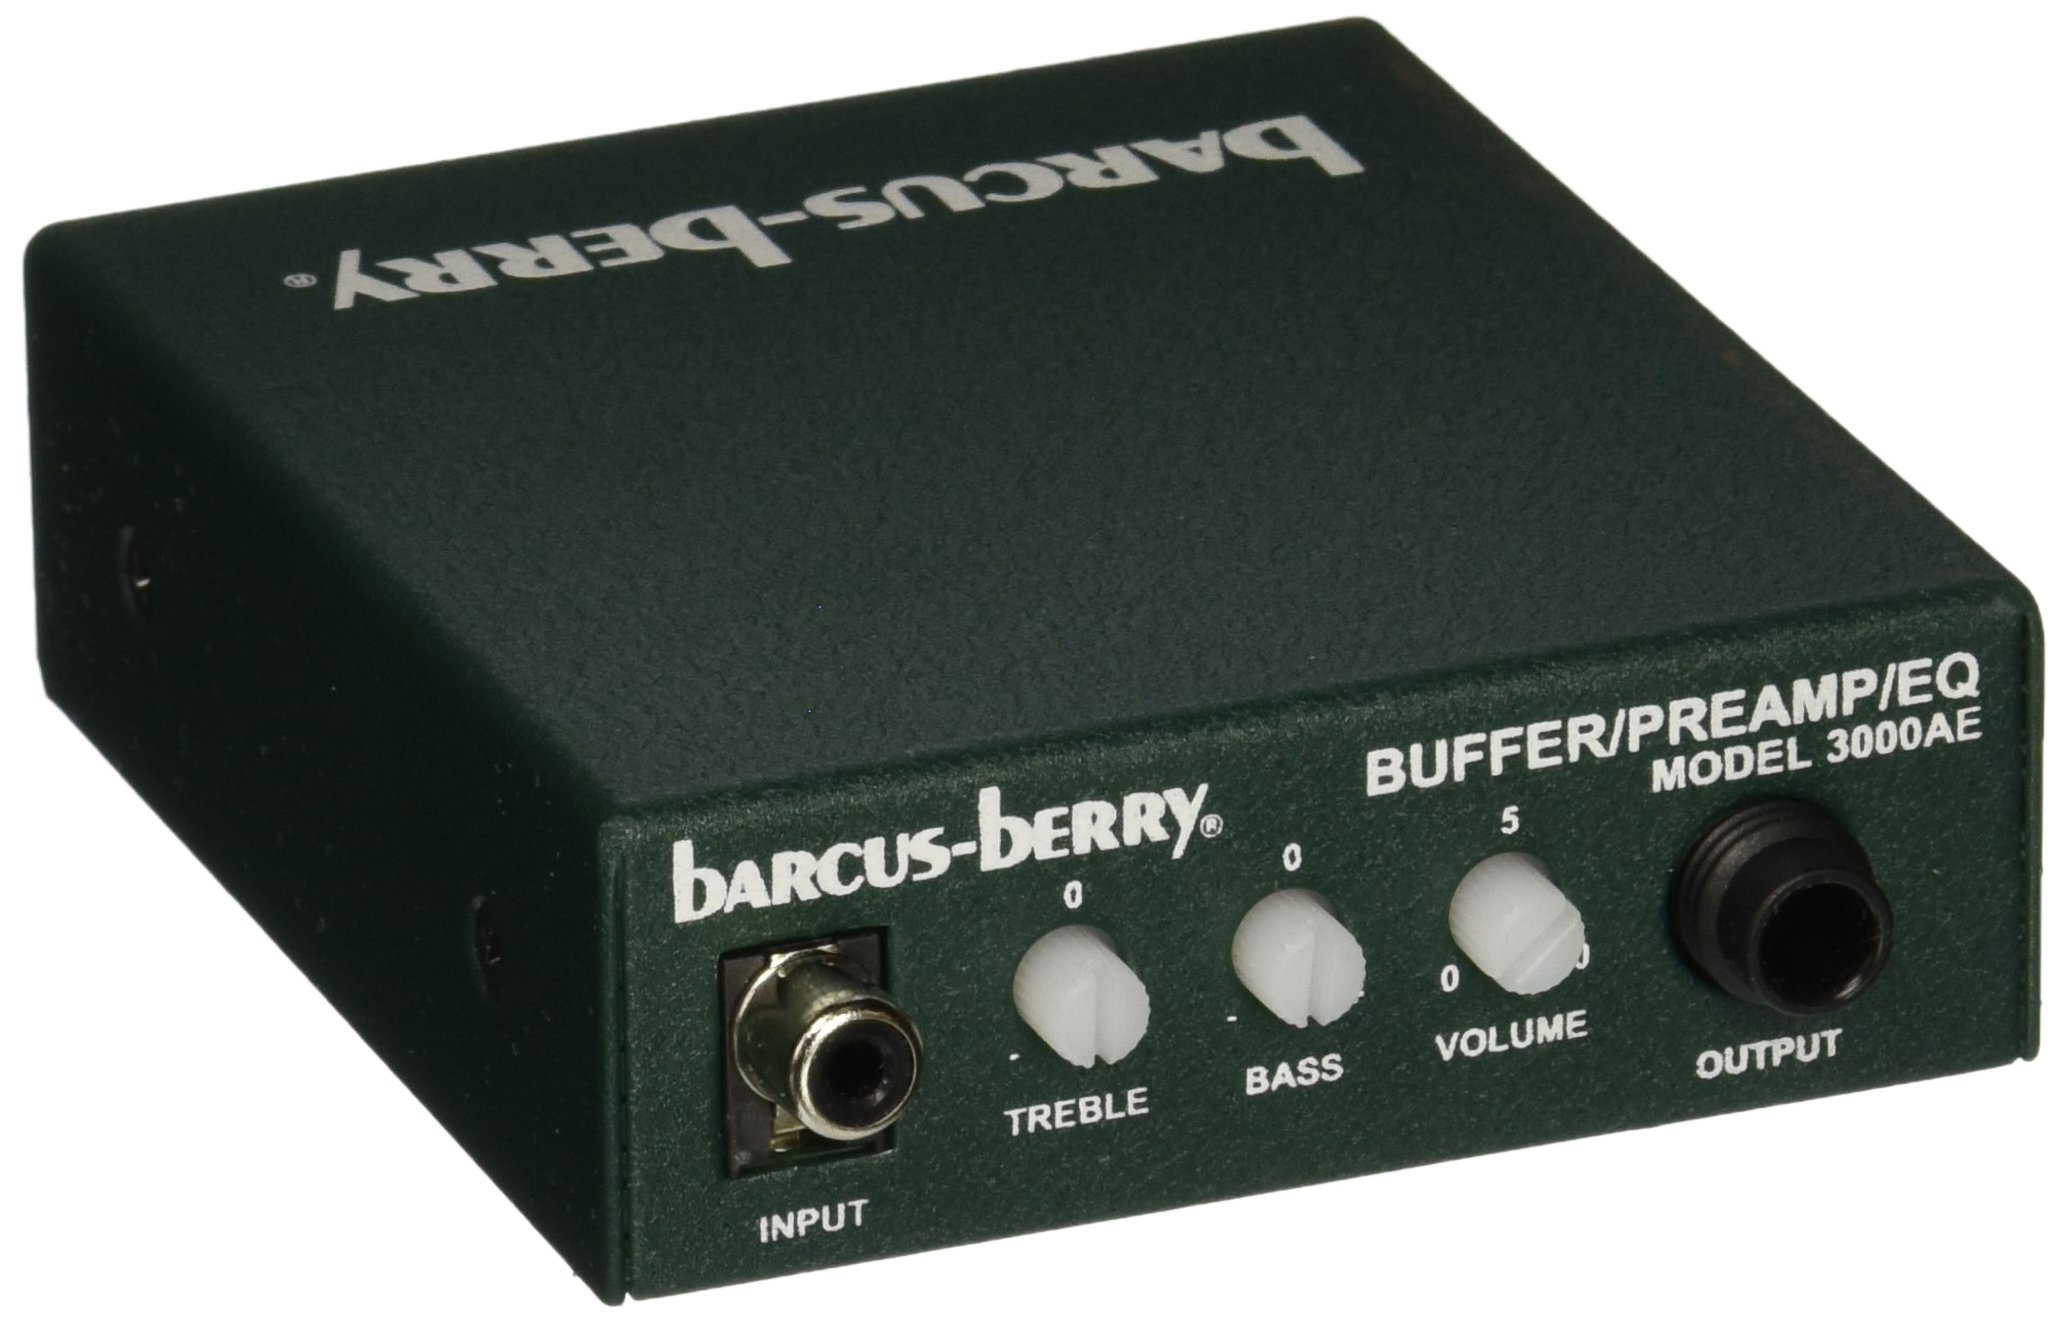 Barcus Berry 3000AE Piezo Buffer Pre-Amplifier with EQ